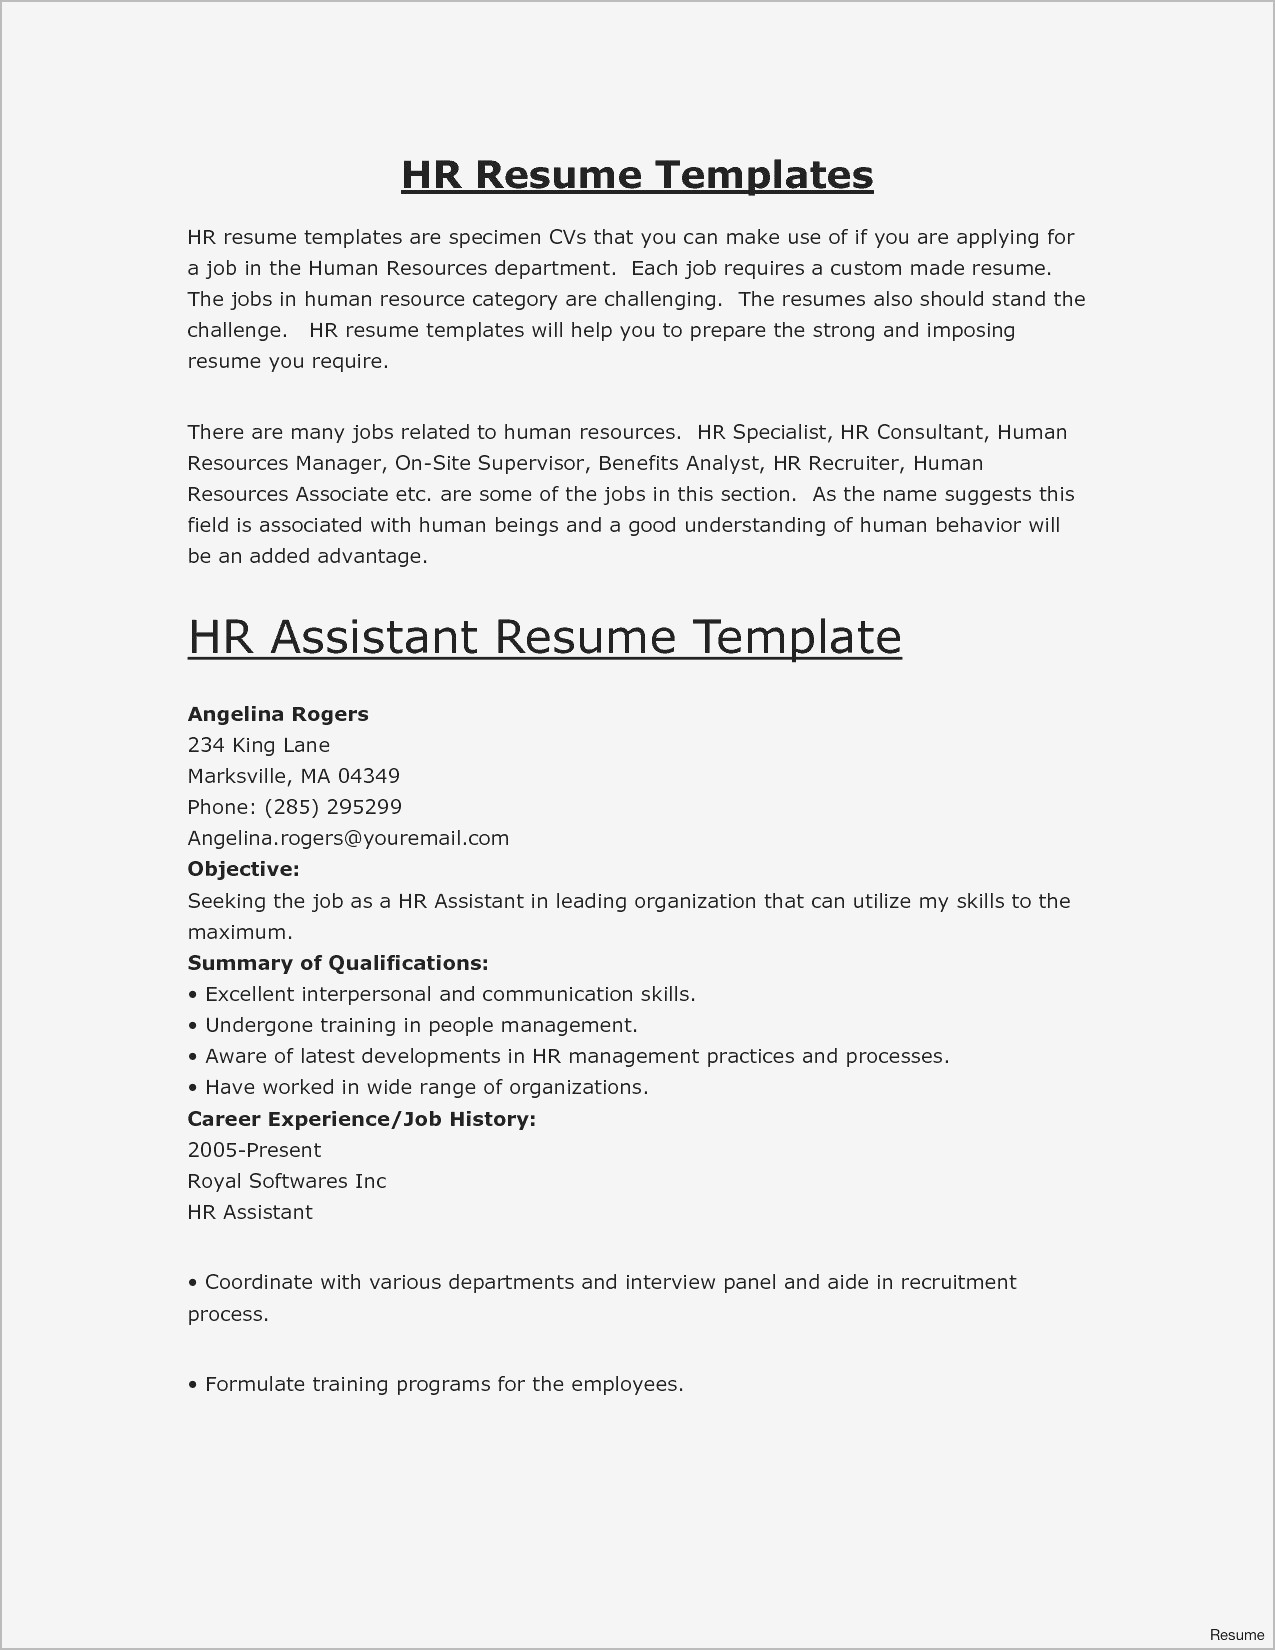 Free Templates For Resumes 2019 Great Resume Samples Good New Free Resume Examples Best Resum Sample Fresh